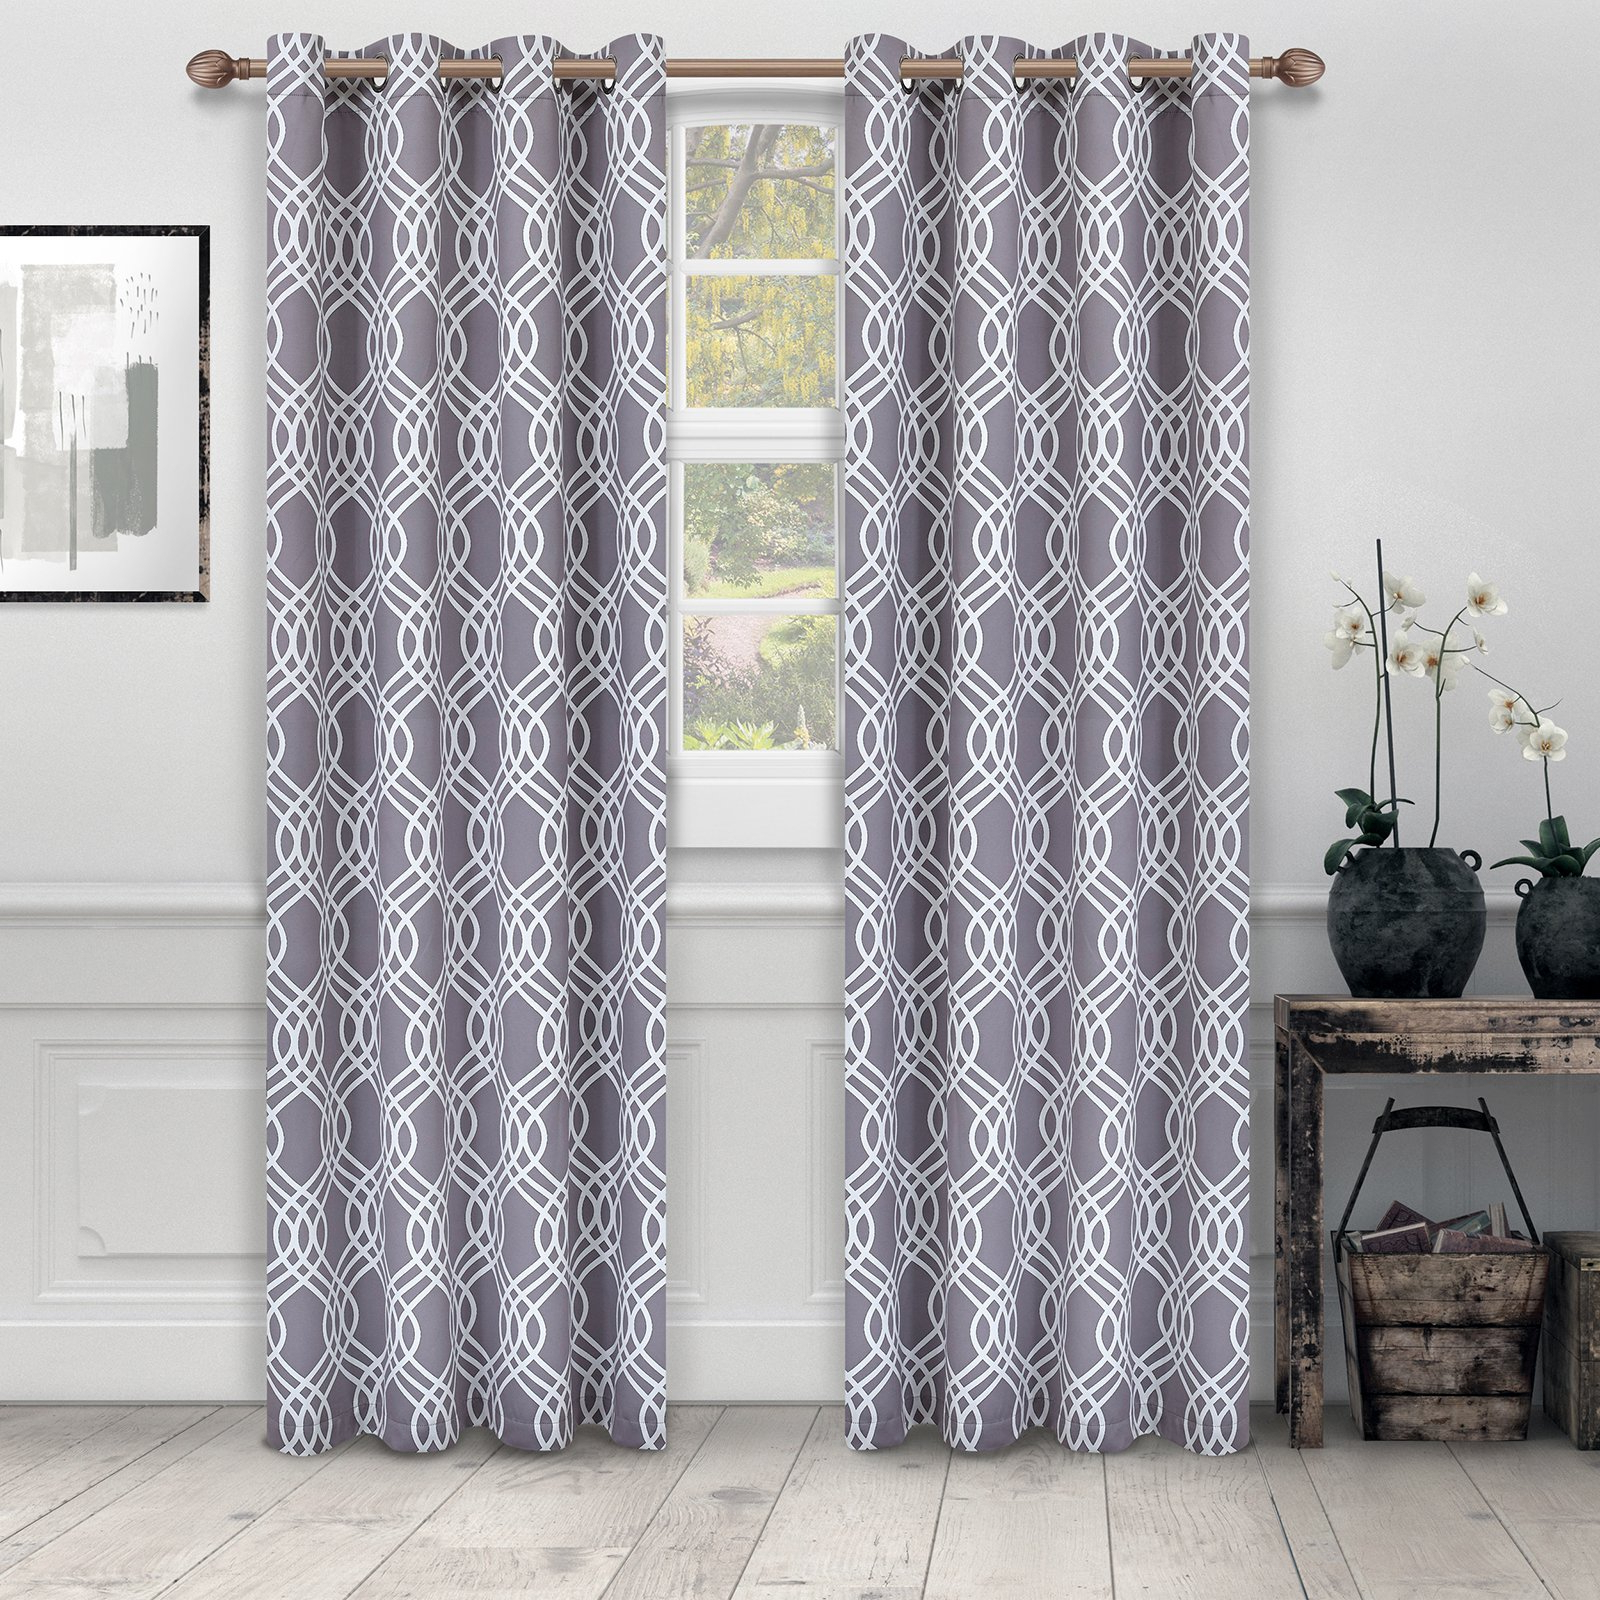 Superior Ribbon Blackout 2 Panel Curtains Gray In 2019 Inside Most Up To Date Superior Leaves Insulated Thermal Blackout Grommet Curtain Panel Pairs (View 17 of 20)